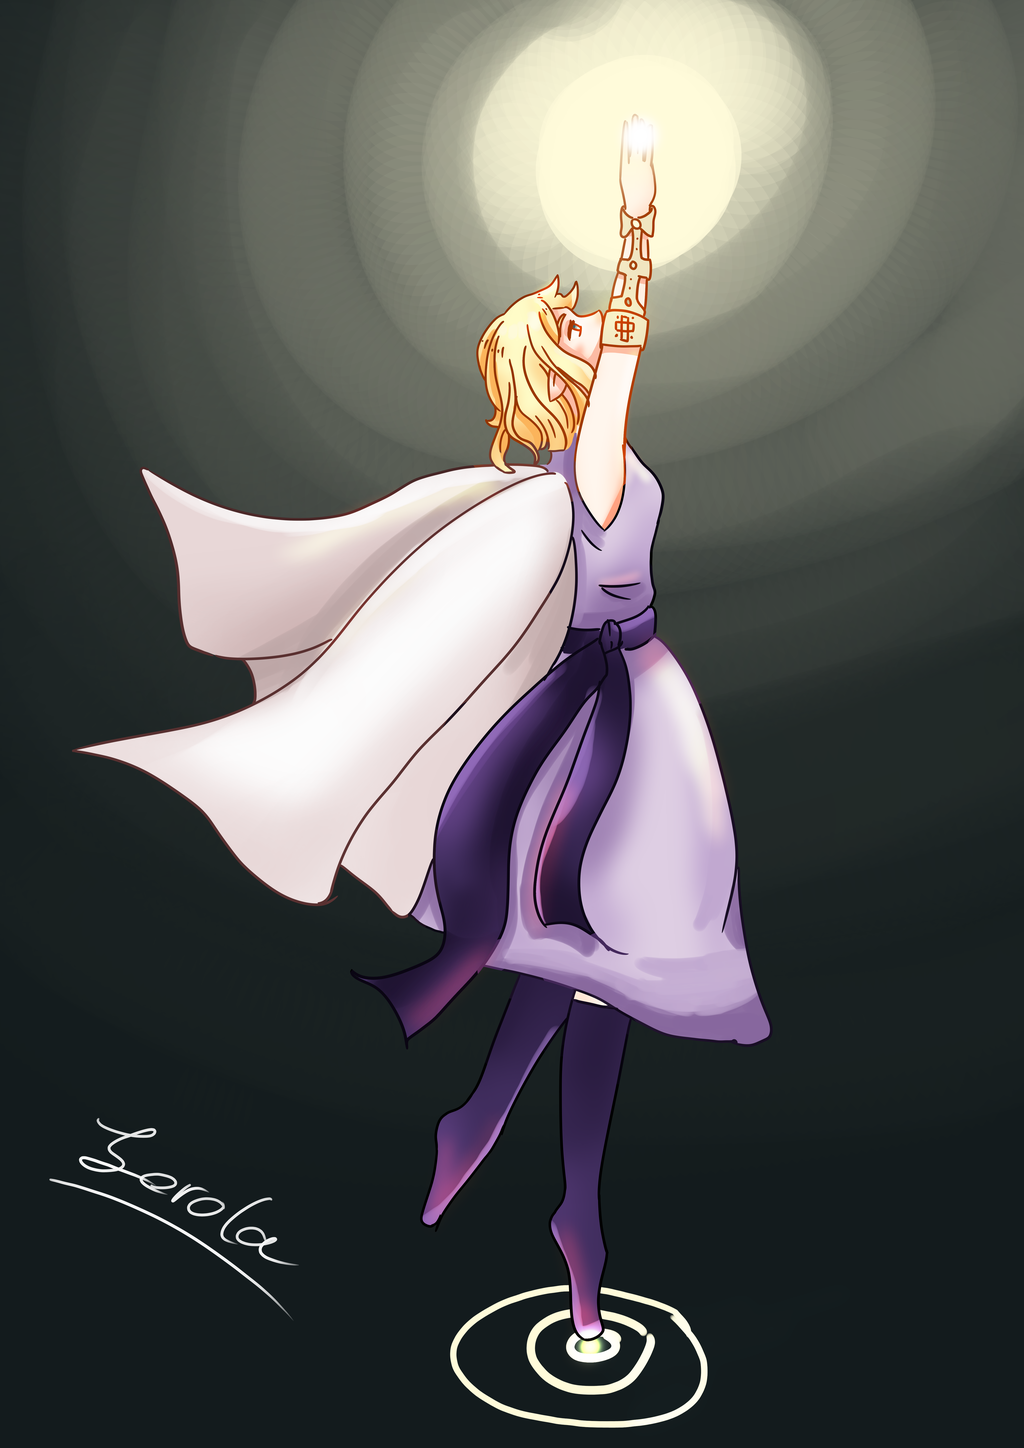 Most recent image: Fairy_Melody